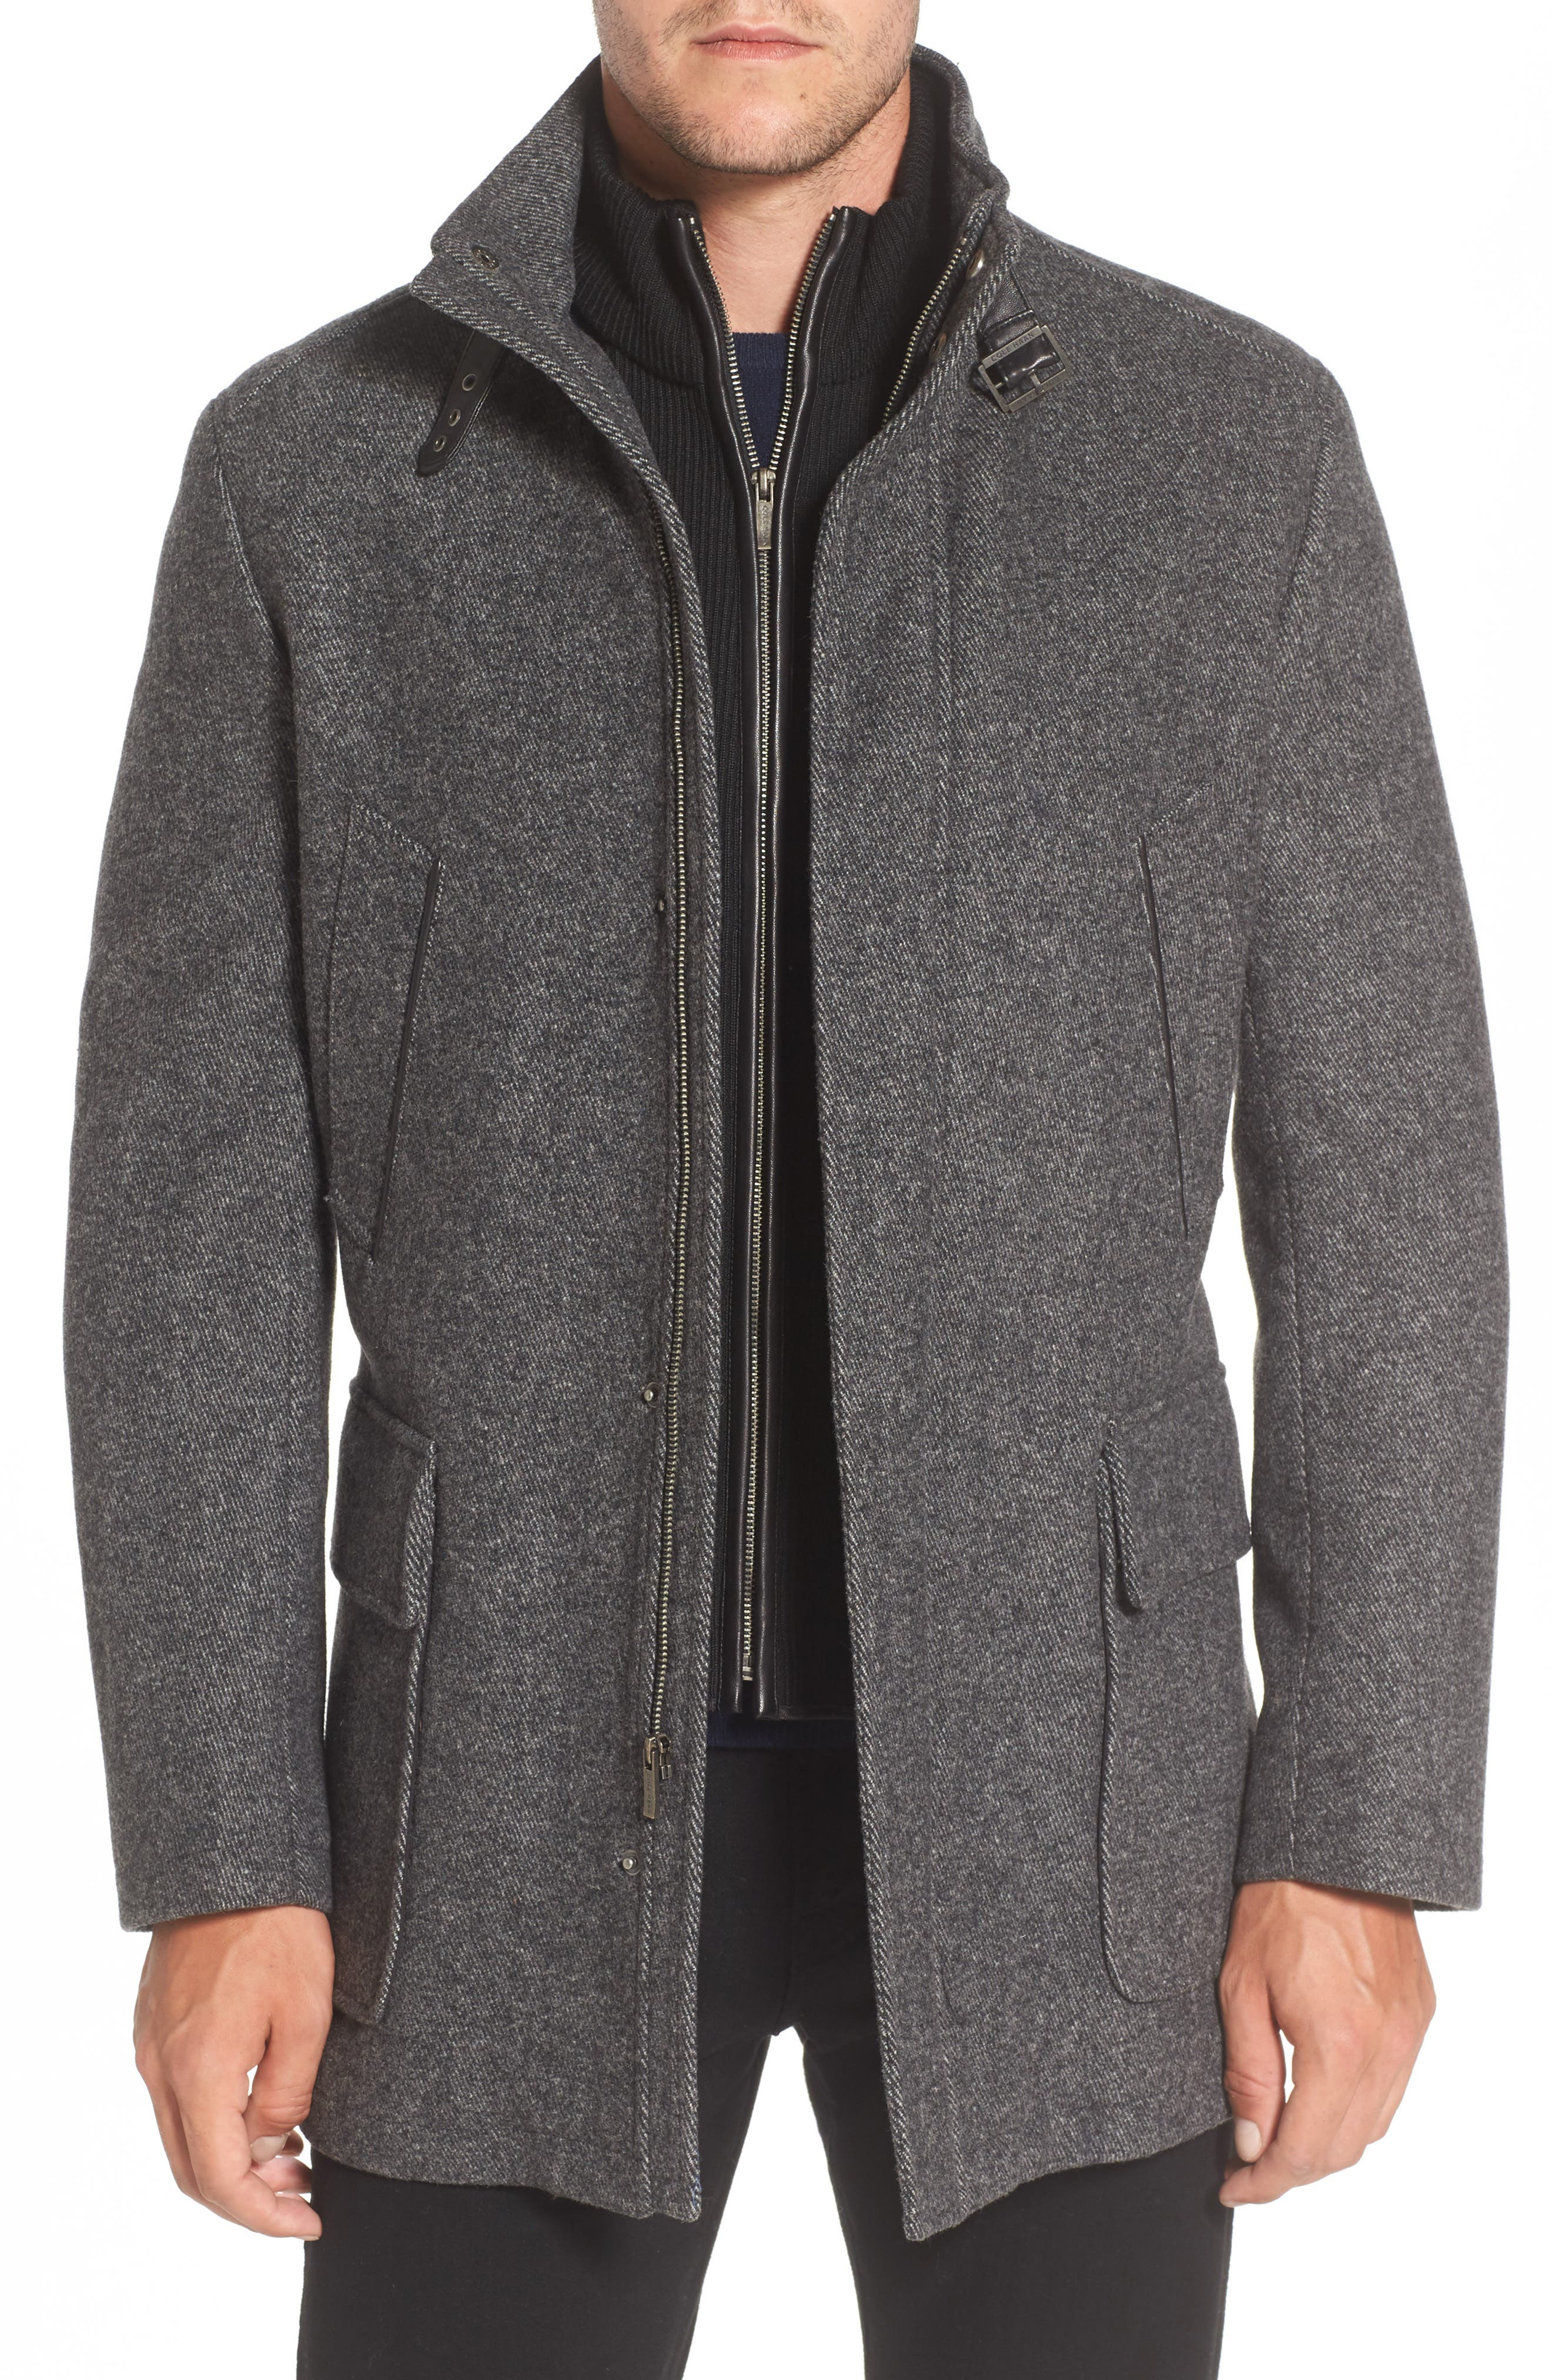 Wool Blend Car Coat with Removable Knit Bib,                         Main,                         color, 073